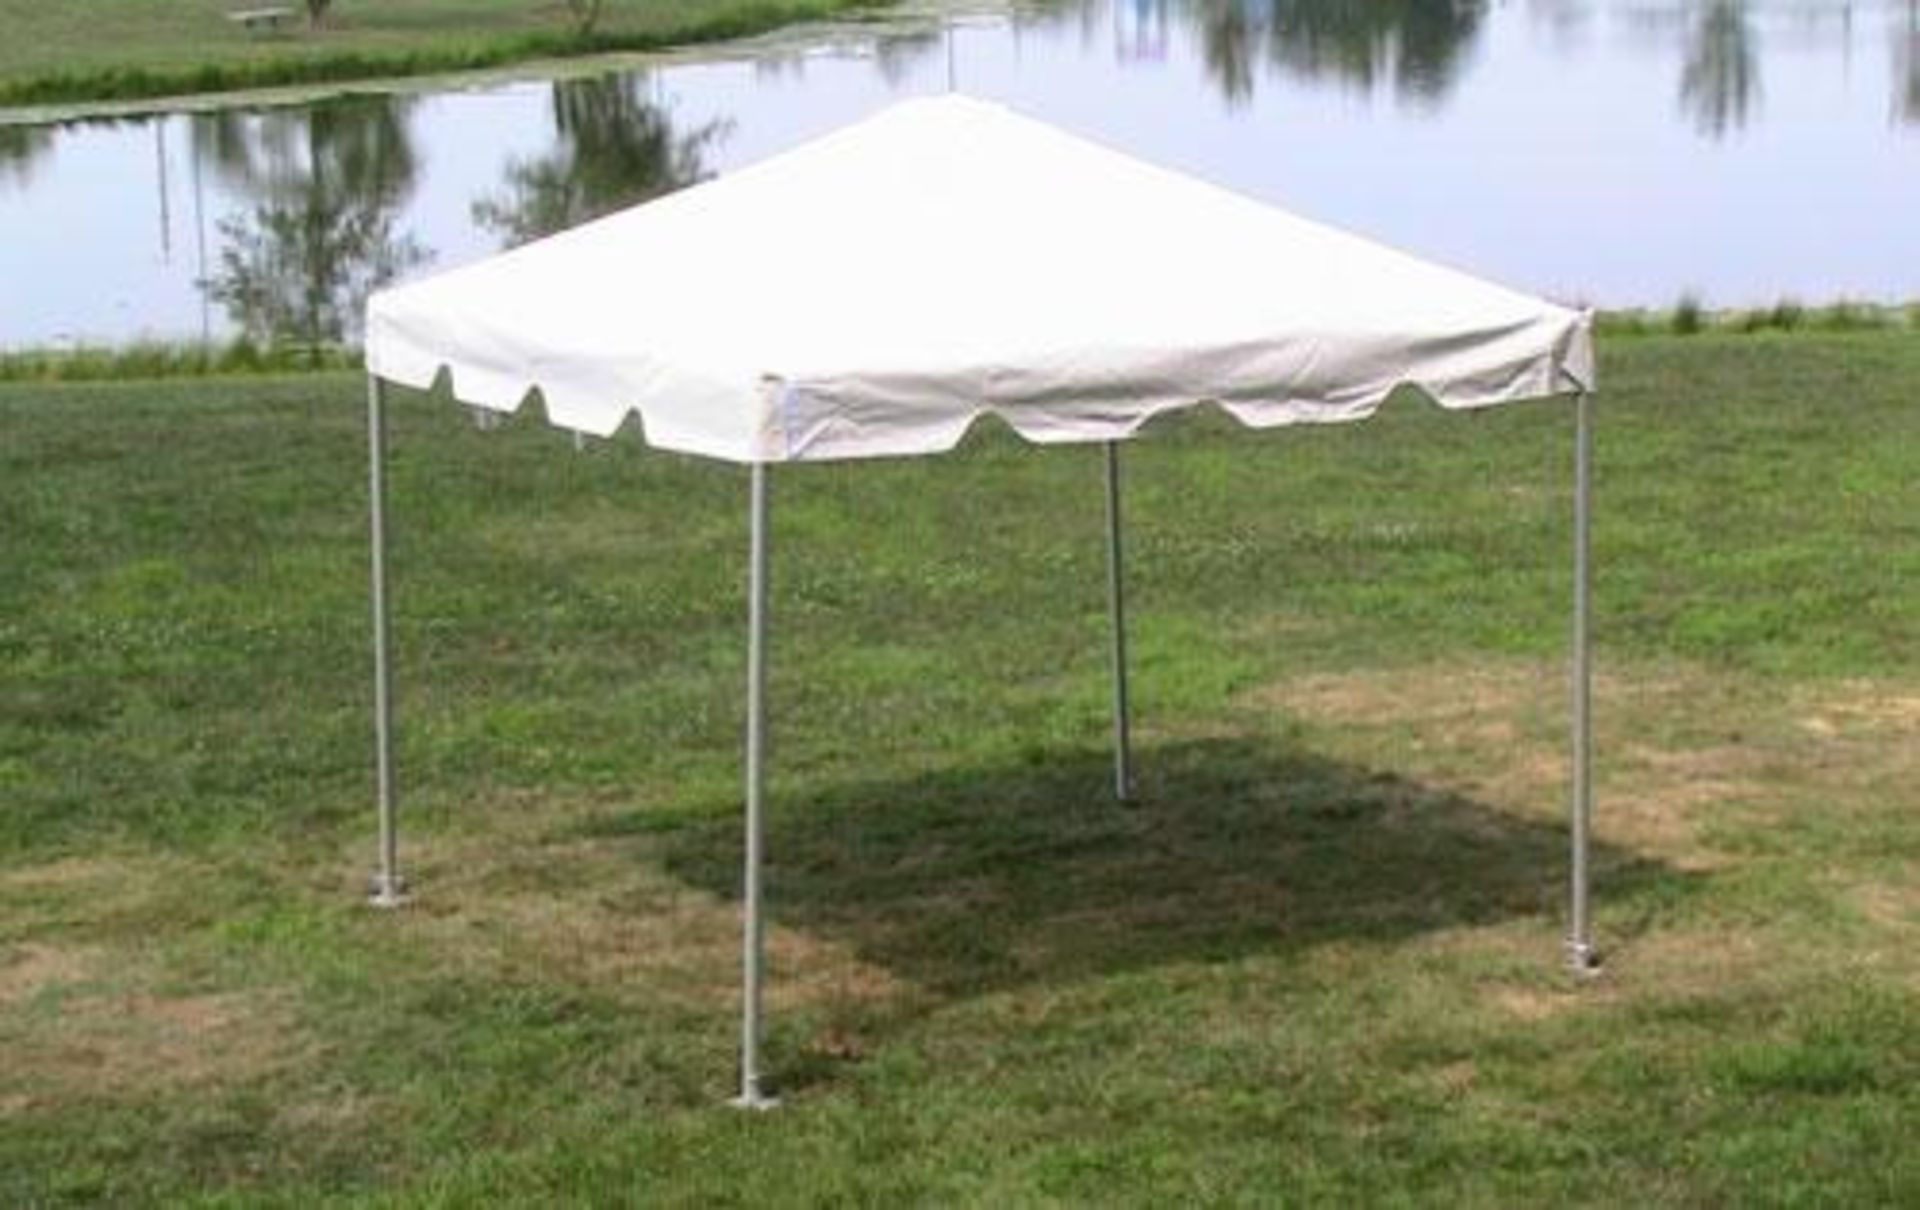 Lot 50 - 10 ft. x 10 ft. Frame Tents - Complete (sidewalls and rain gutters lots available)